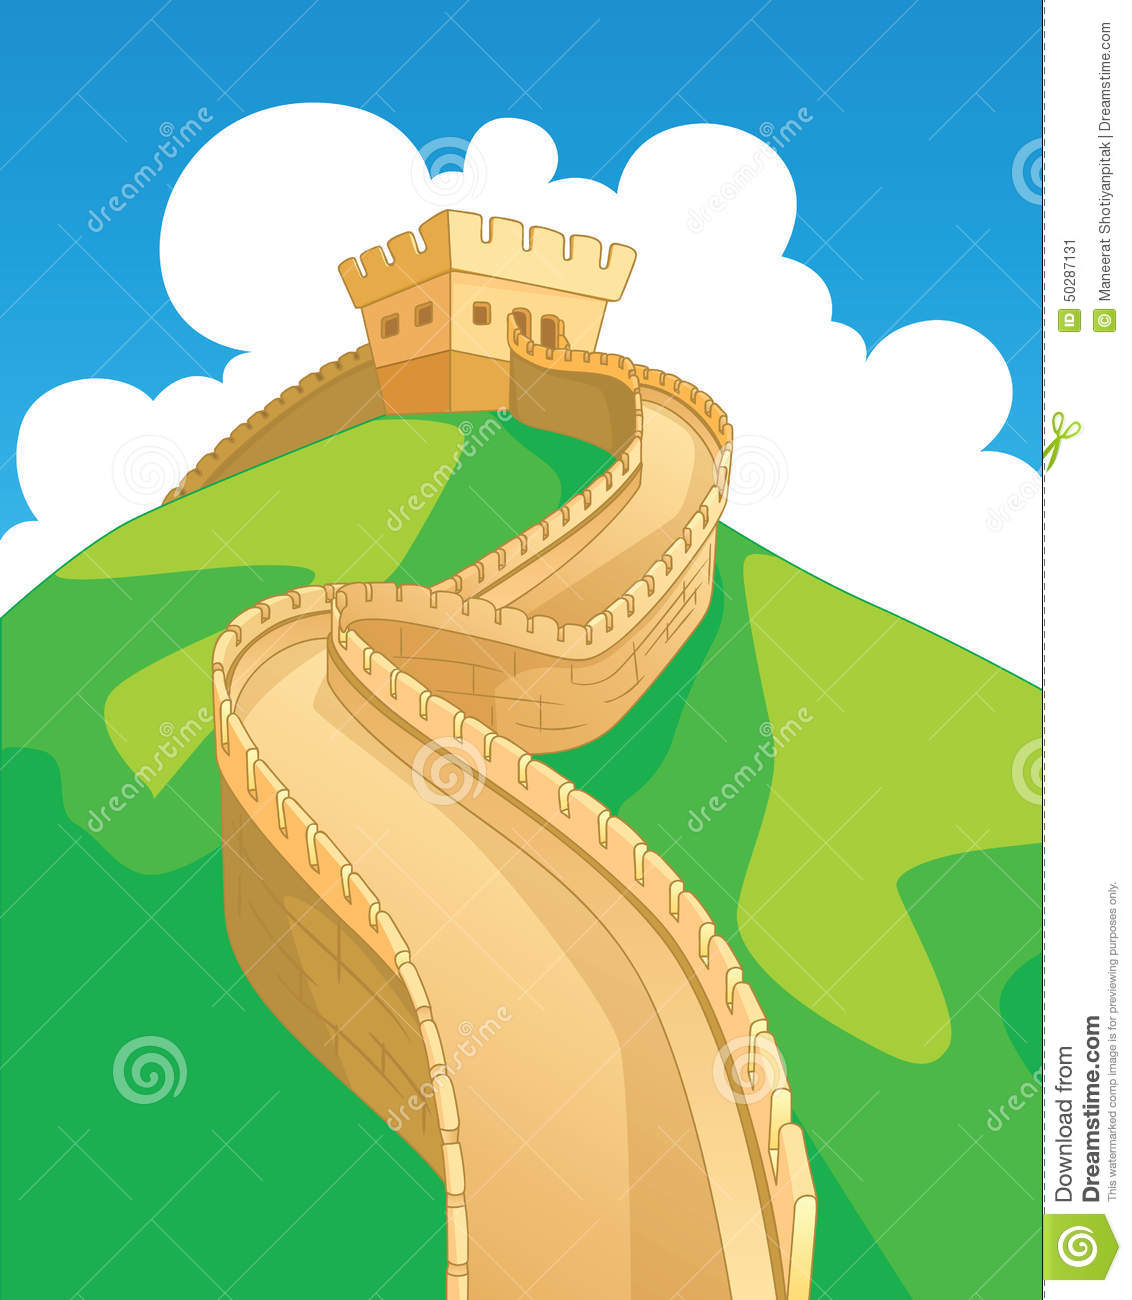 China Wall stock illustration. Illustration of famous - 50287131